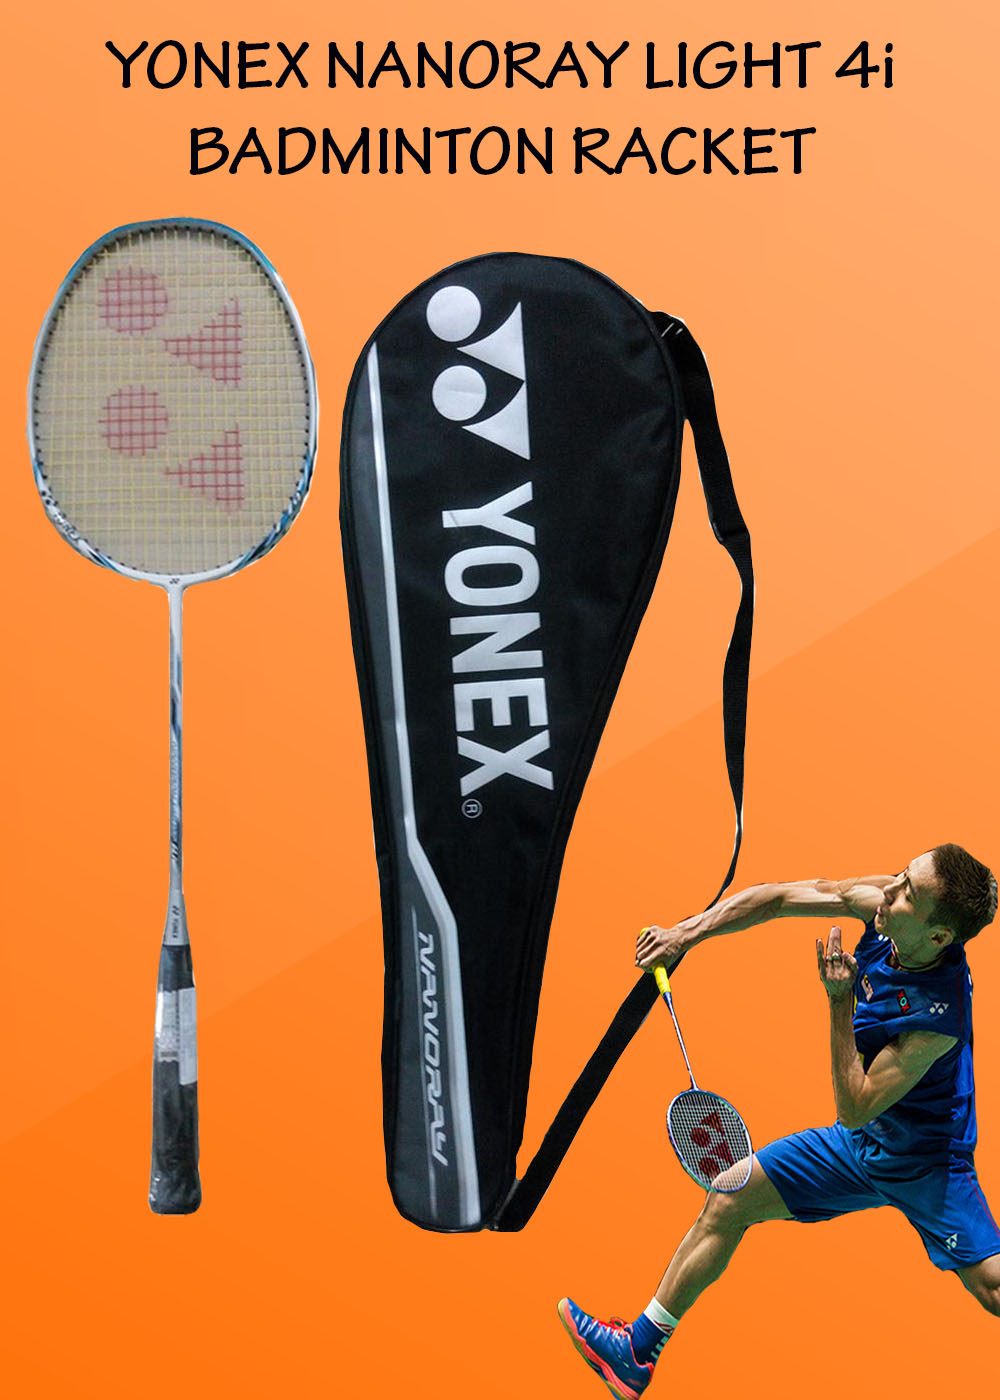 Yonex Nanoray Light 4i Badminton Racket